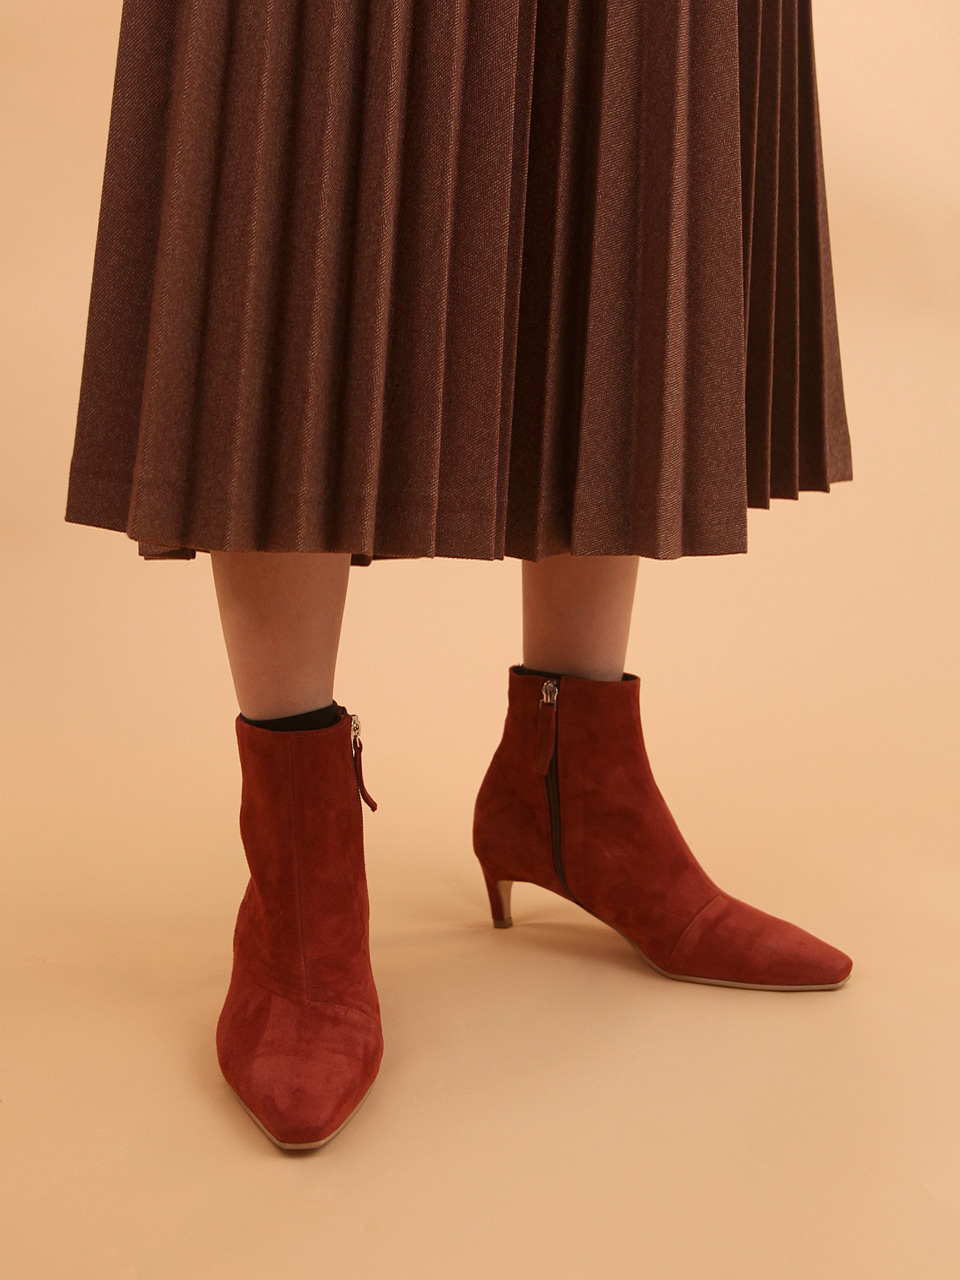 Mrc047 Soft Ankle Boots (Brick Red Suede)